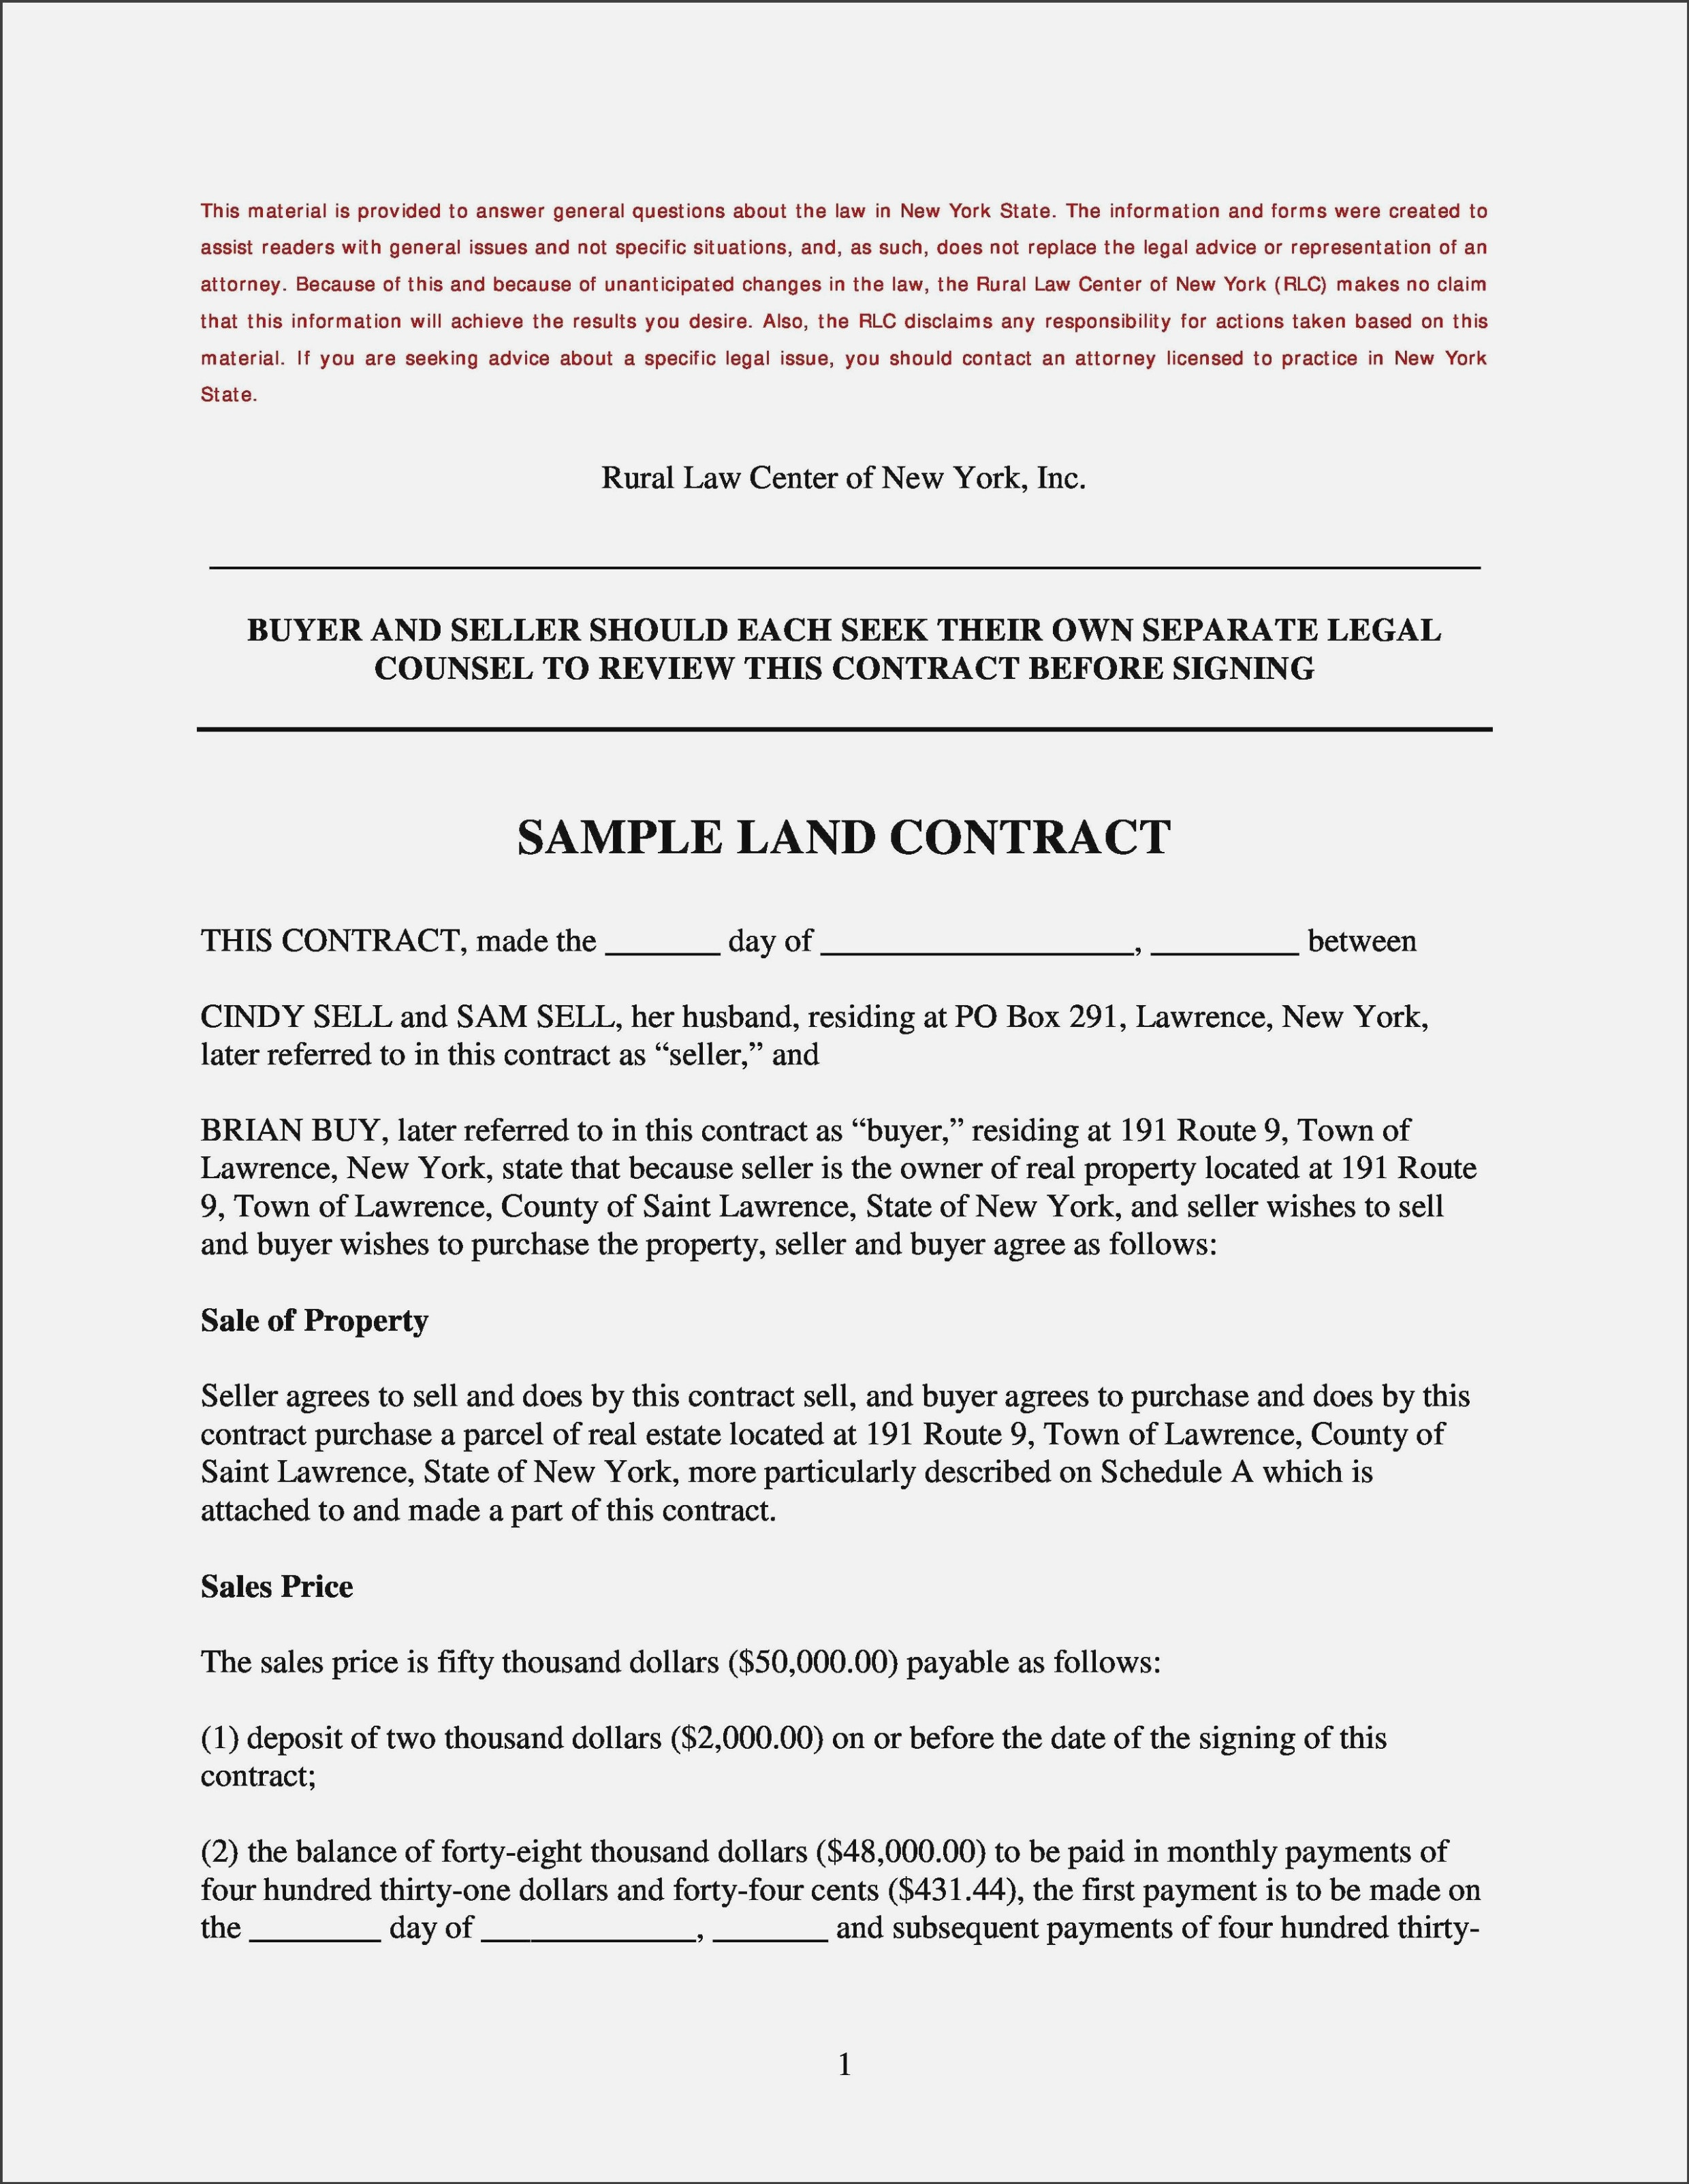 Free Printable Land Contract Forms #13 – Free Legal Forms New York - Free Printable Land Contract Forms